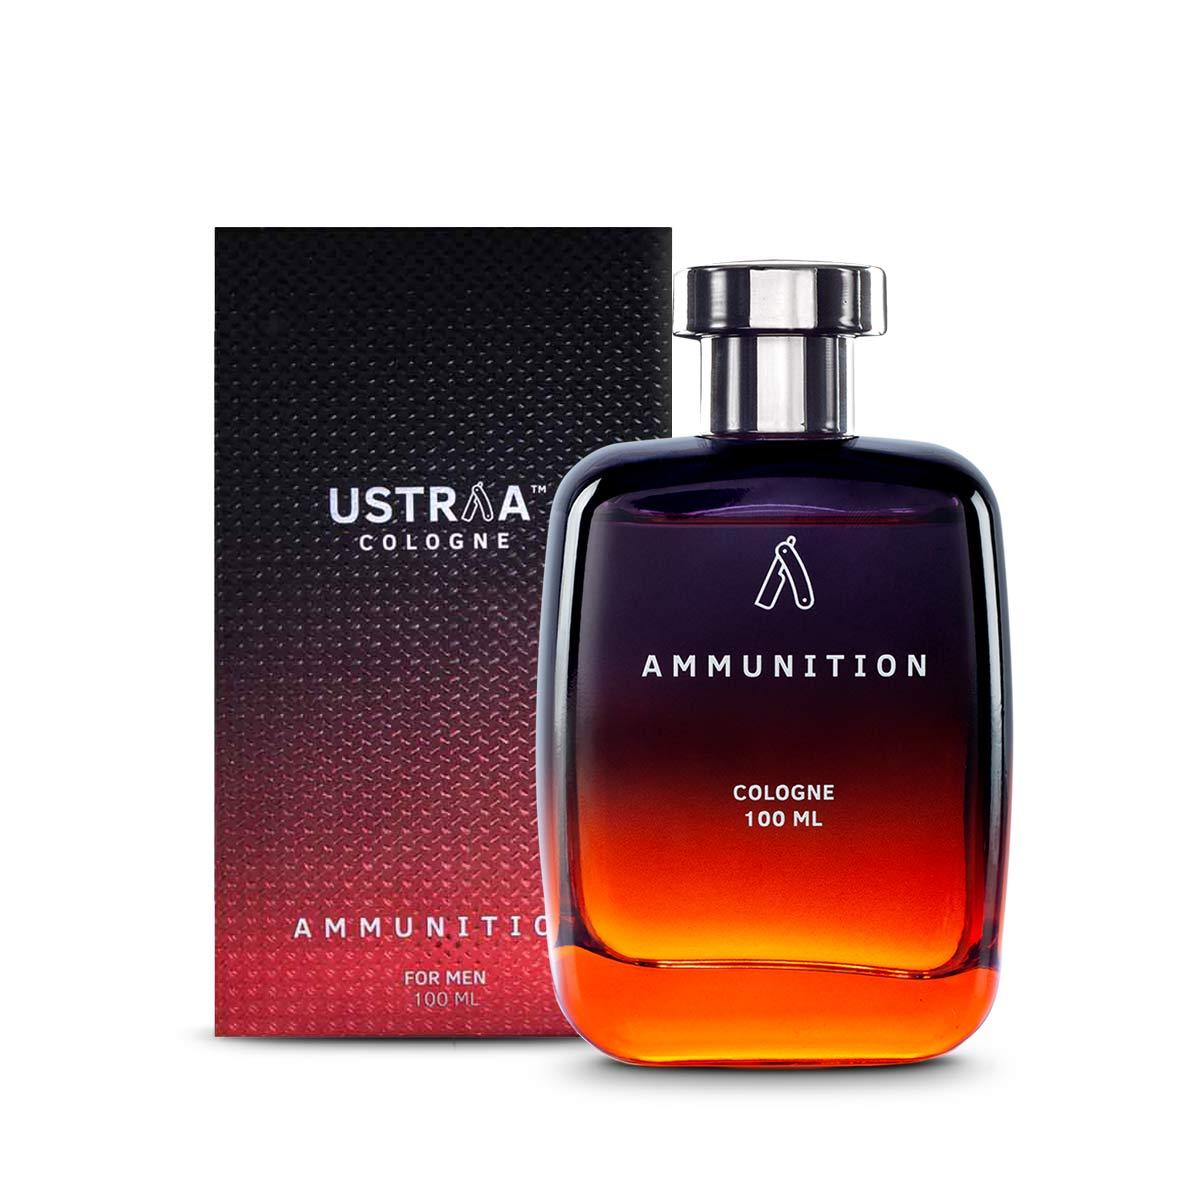 Ustraa Ammunition Cologne - Deep, Mysterious and Intense Fragrance - No Gas - Perfume for Men - 100 ml